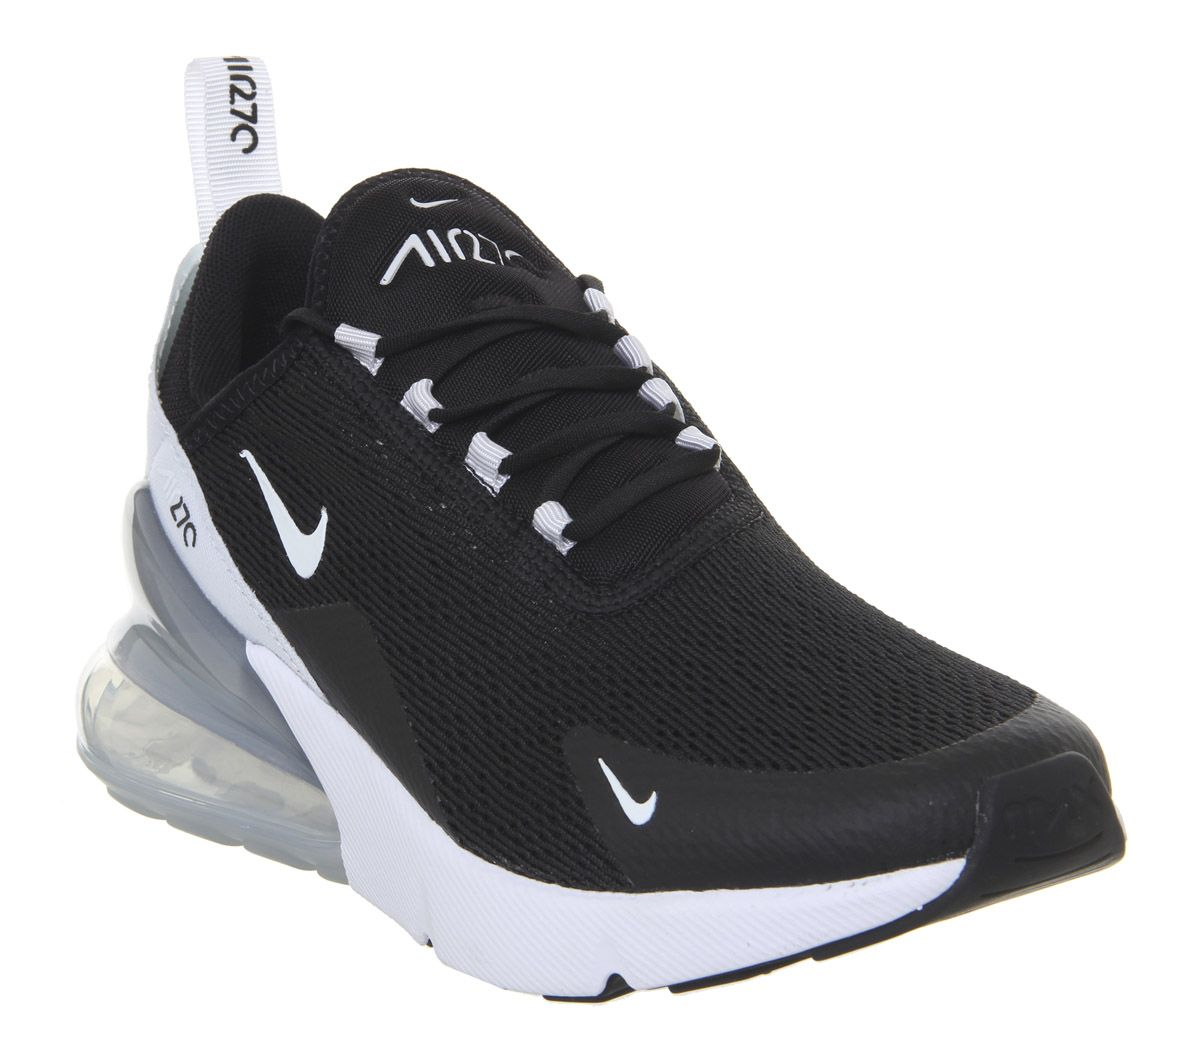 feac5dca670ed Nike Air Max 270 Trainers Black White Pure Platinum White - Hers ...